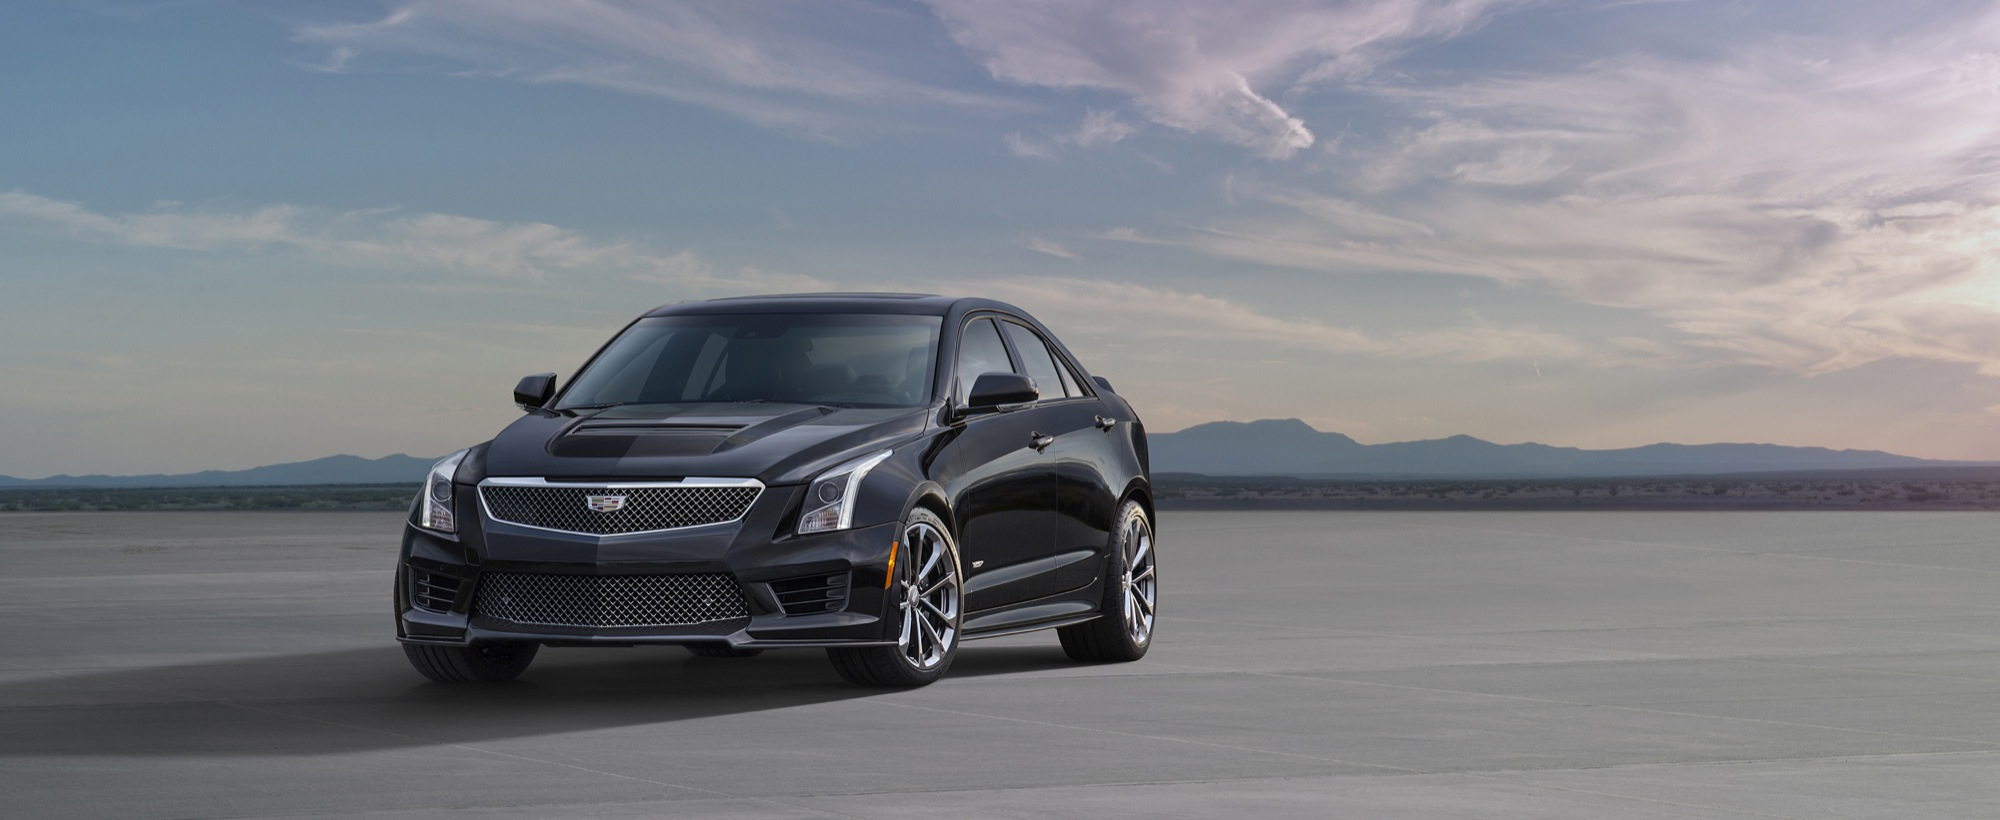 2019 Cadillac ATS V Sedan photo - 2